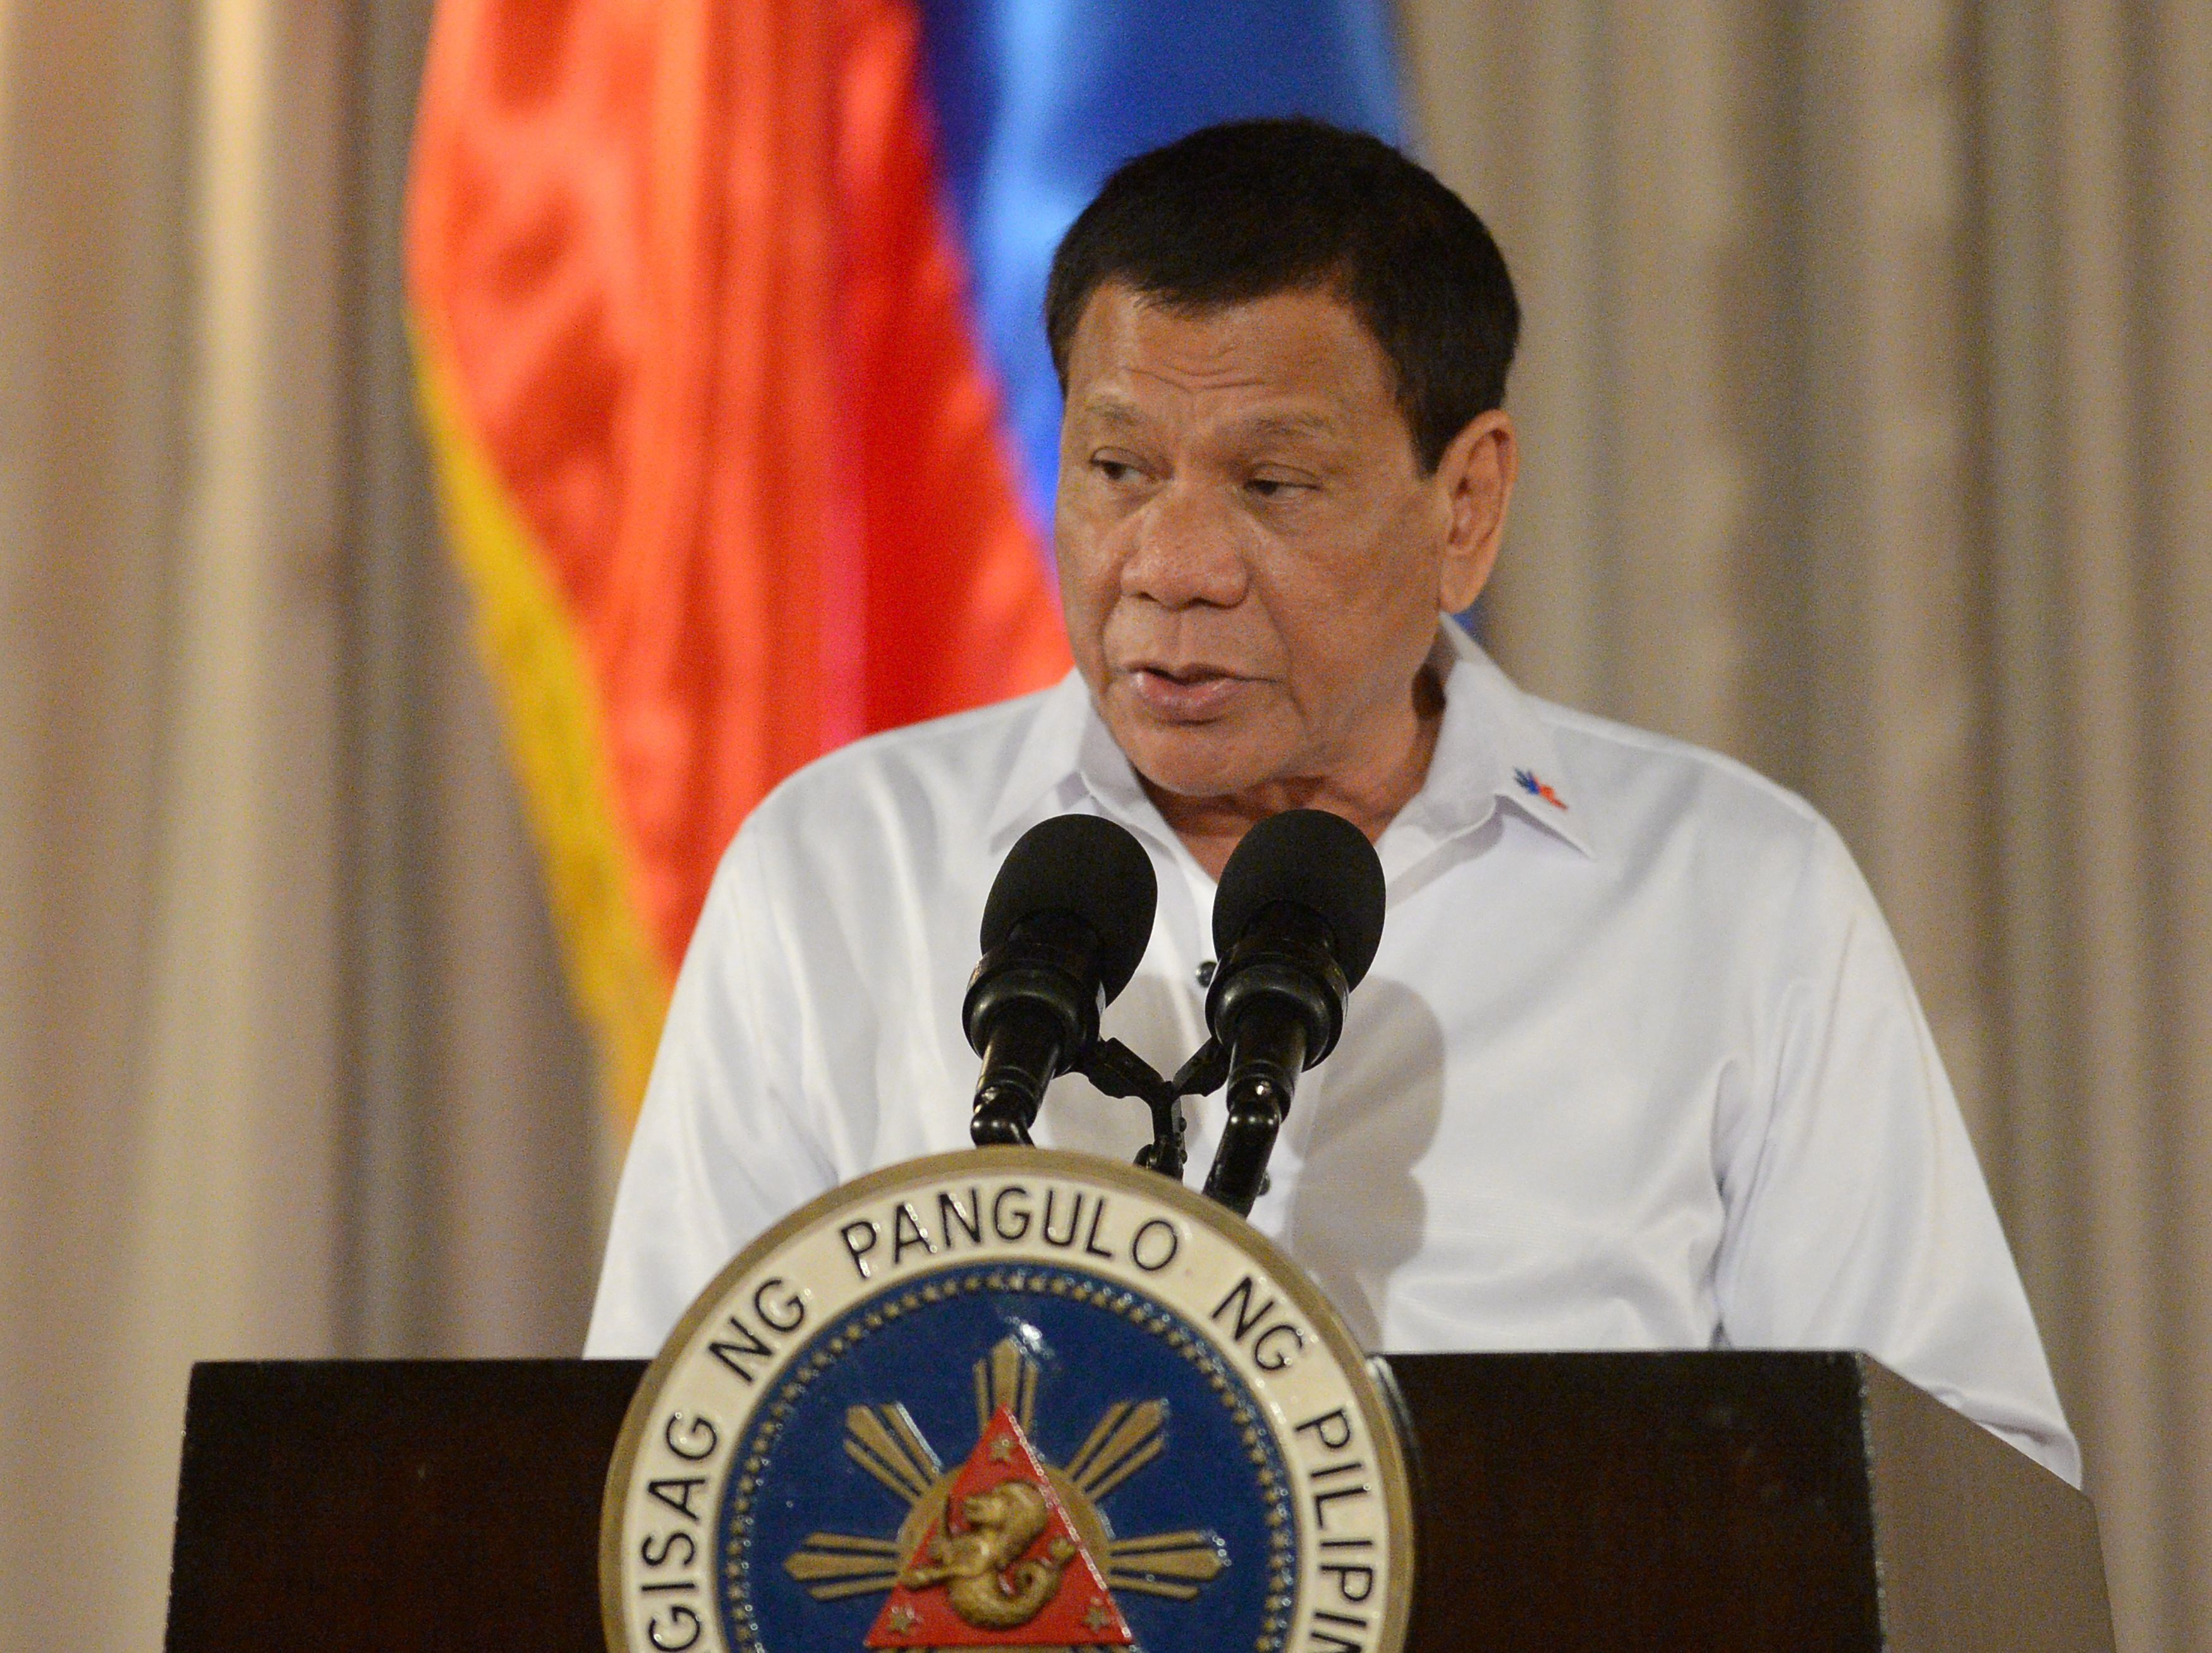 Philippine President Rodrigo Duterte delivers a speech during a ceremony for a proposed draft of the Bangsamoro Basic Law (BBL) at the Malacanang Palace in Manila on July 17, 2017. Duterte offered 'genuine autonomy' to the Philippines' Muslim minority on July 17 to help him defeat Islamist militants who seized a southern city in the gravest challenge to his year-old rule. / AFP PHOTO / TED ALJIBE        (Photo credit should read TED ALJIBE/AFP/Getty Images)